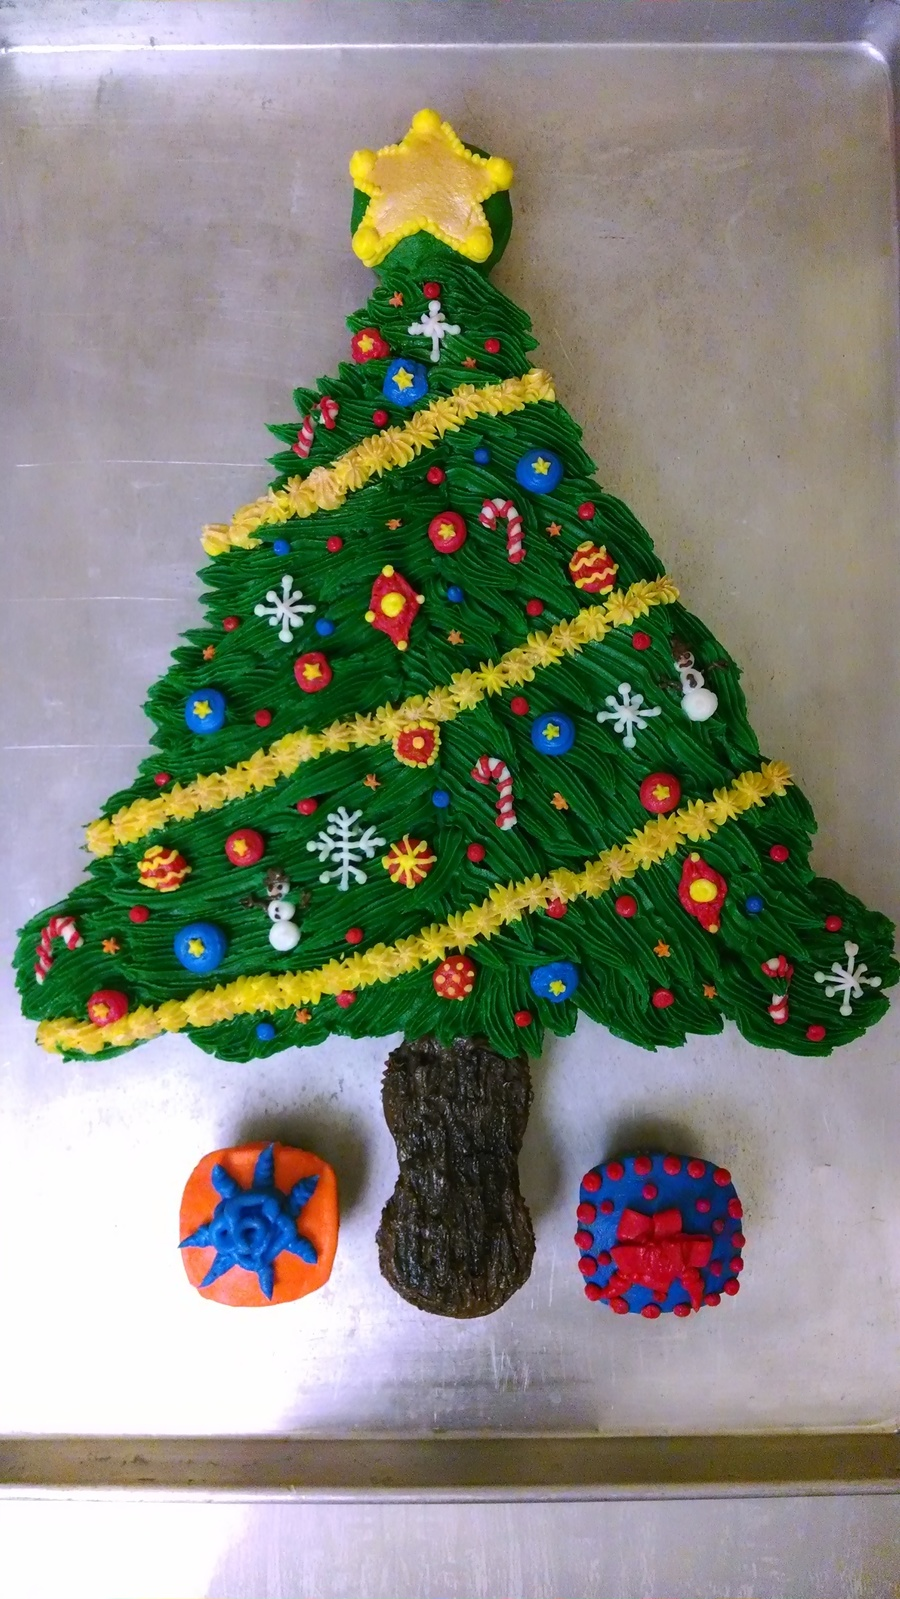 Christmas Tree Pullapart Cake 2013 Cakecentral Com